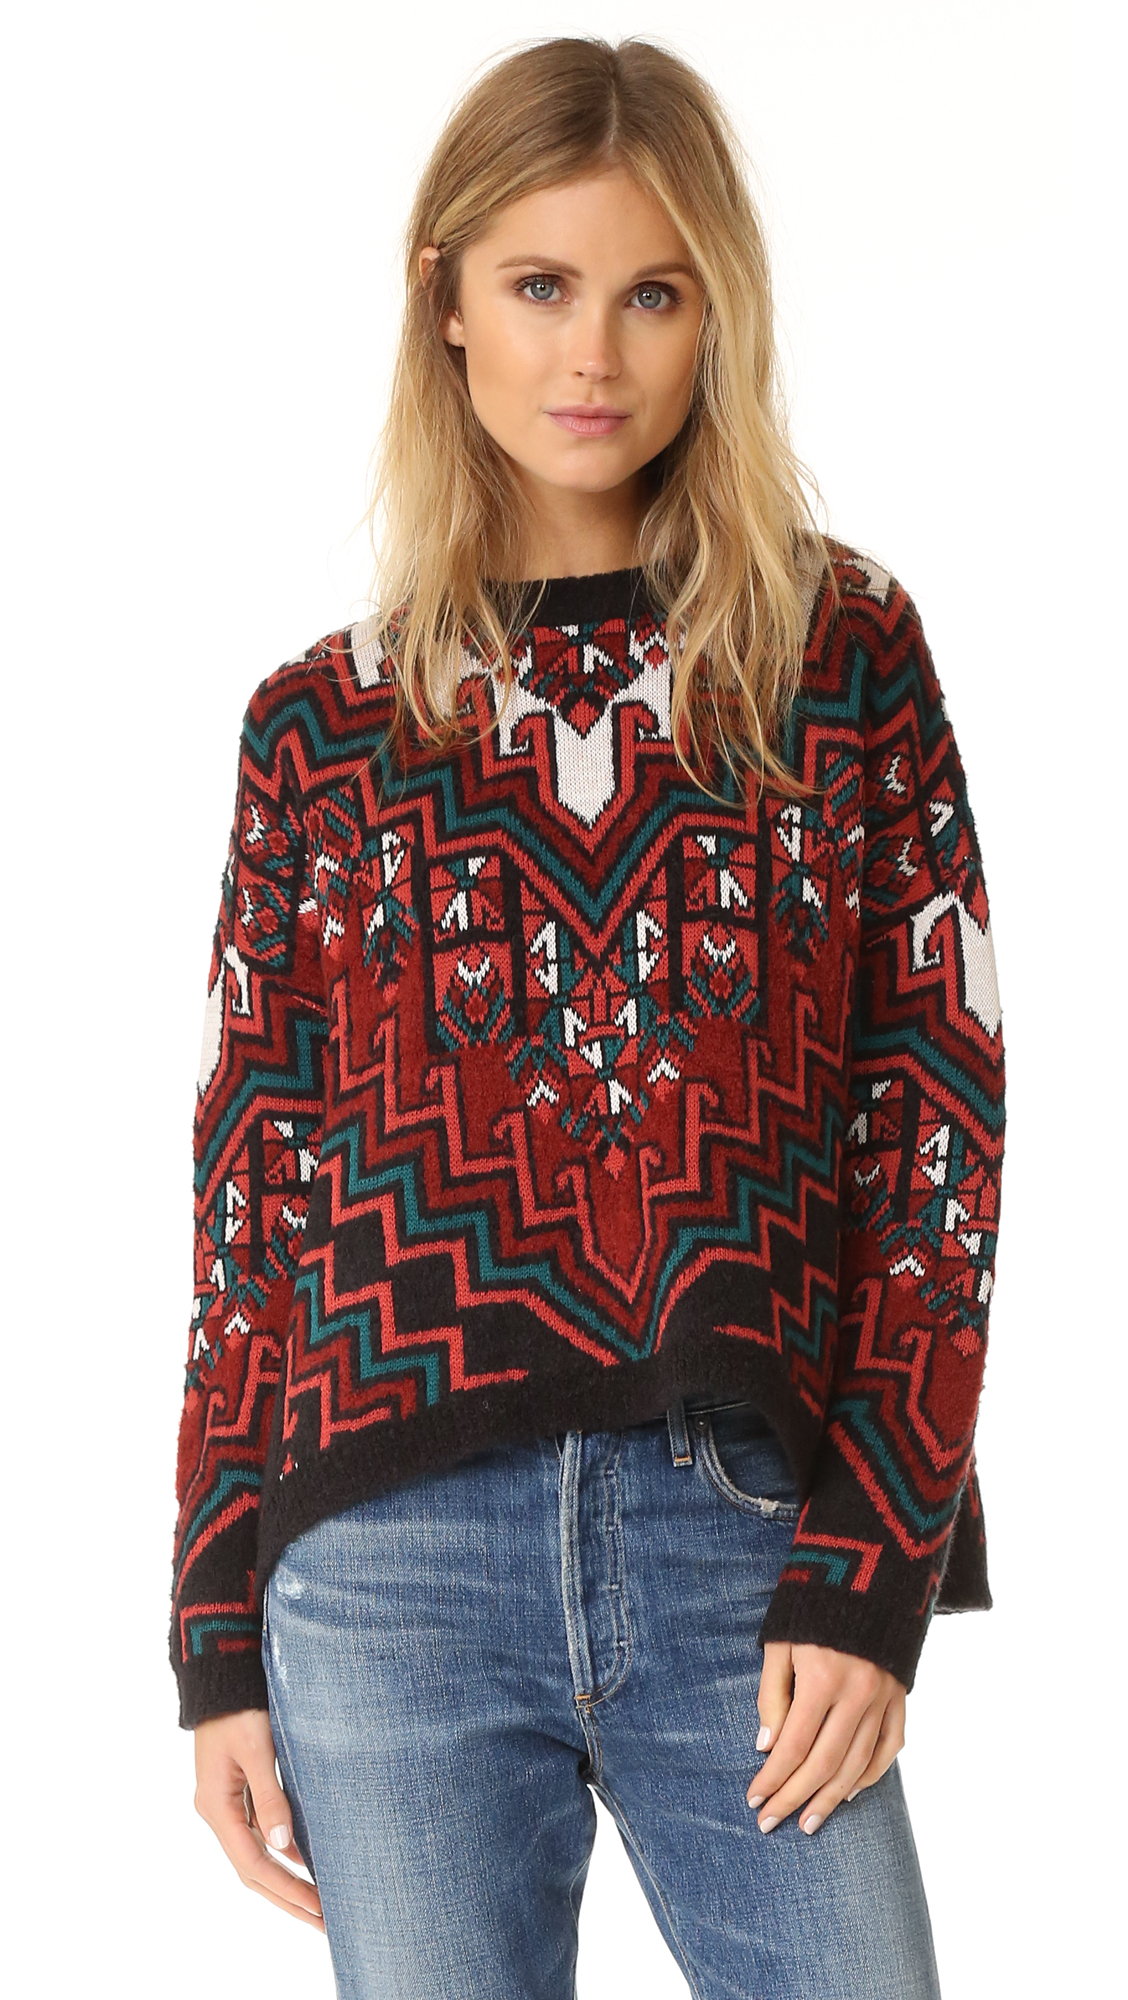 A lively design lends a bohemian feel to this oversized Mara Hoffman sweater. Dropped shoulder seams and long sleeves. Banded edges. Fabric: Knit. 36% polyester/30% acrylic/20% nylon/14% wool. Dry clean. Imported, China. Measurements Length: 20.75in / 53cm, from